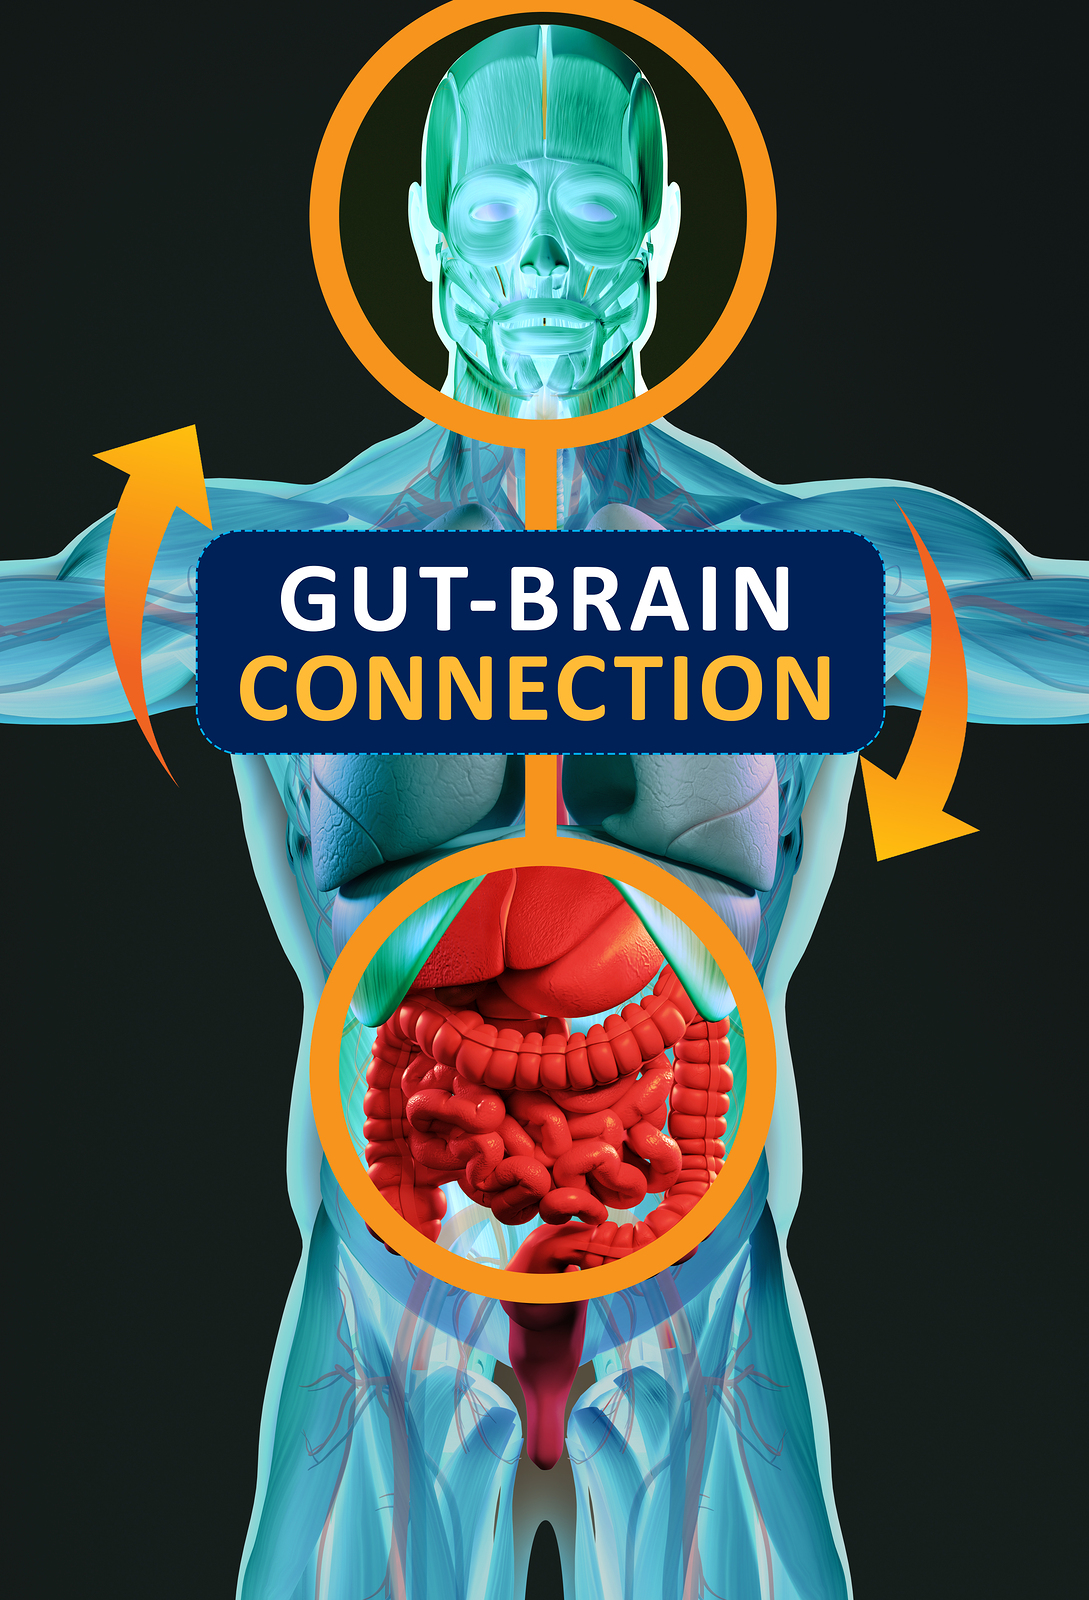 BE MINDFUL OF YOUR GUT